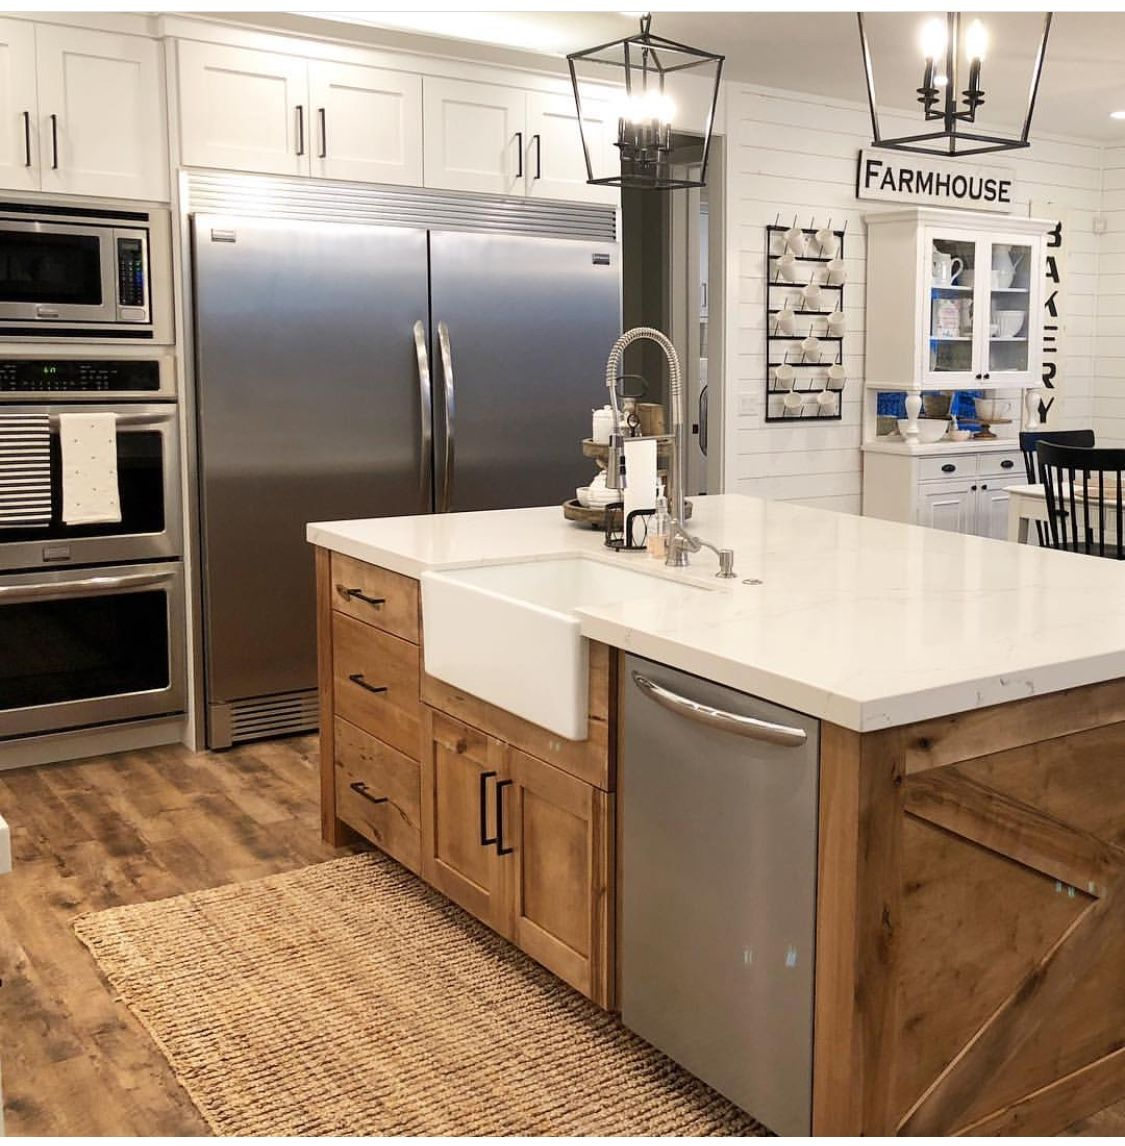 Love The Different Color Island Farmhouse Kitchen Design Kitchen Style Kitchen Renovation